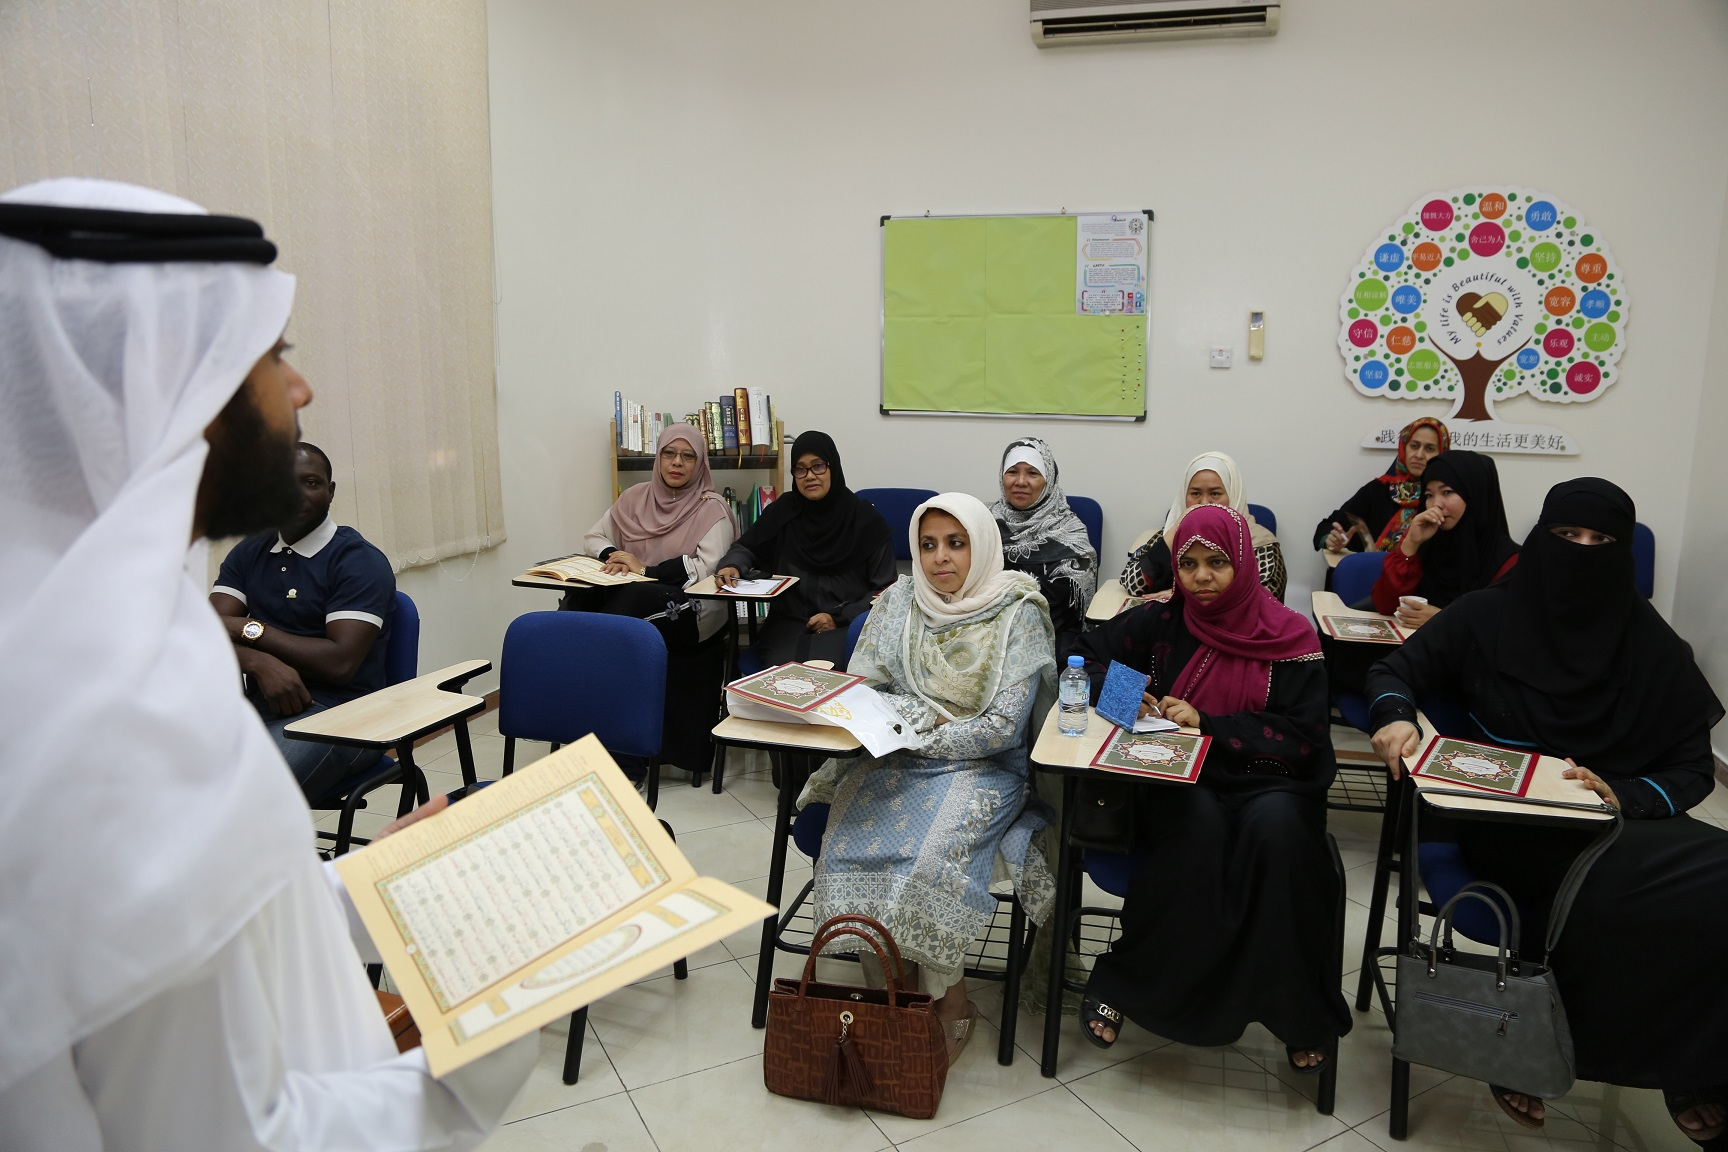 1724 Learners Benefited from ZHIC IslamicCulture Program